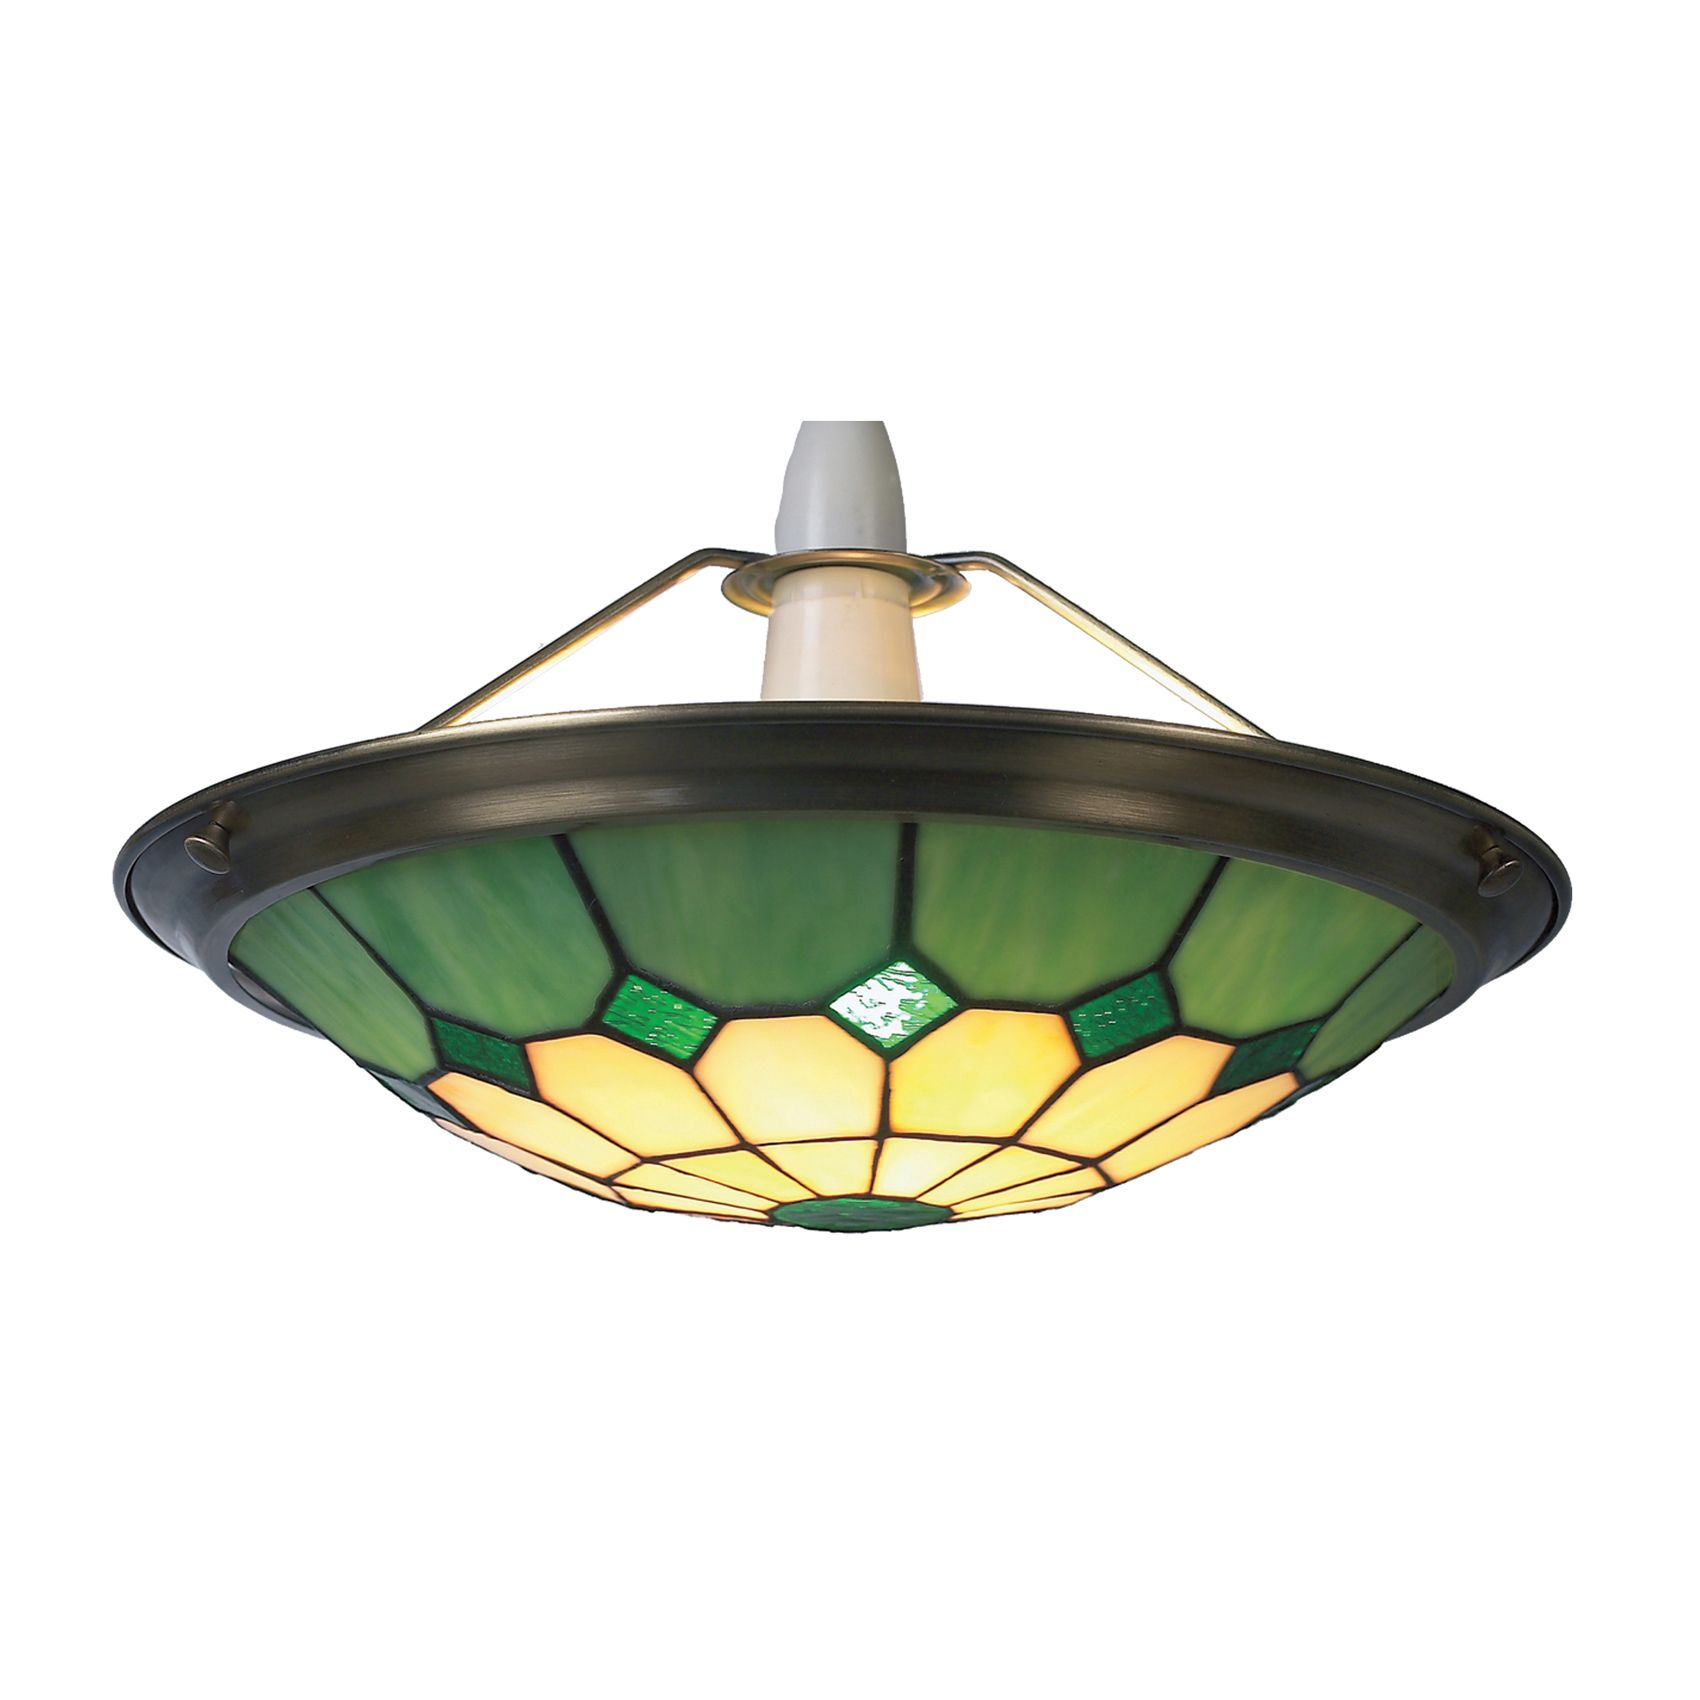 Tiffany ceiling lamps product tiffany bistro green ceiling light tiffany ceiling lamps product tiffany bistro green ceiling light shade uplighter 35cms mozeypictures Image collections